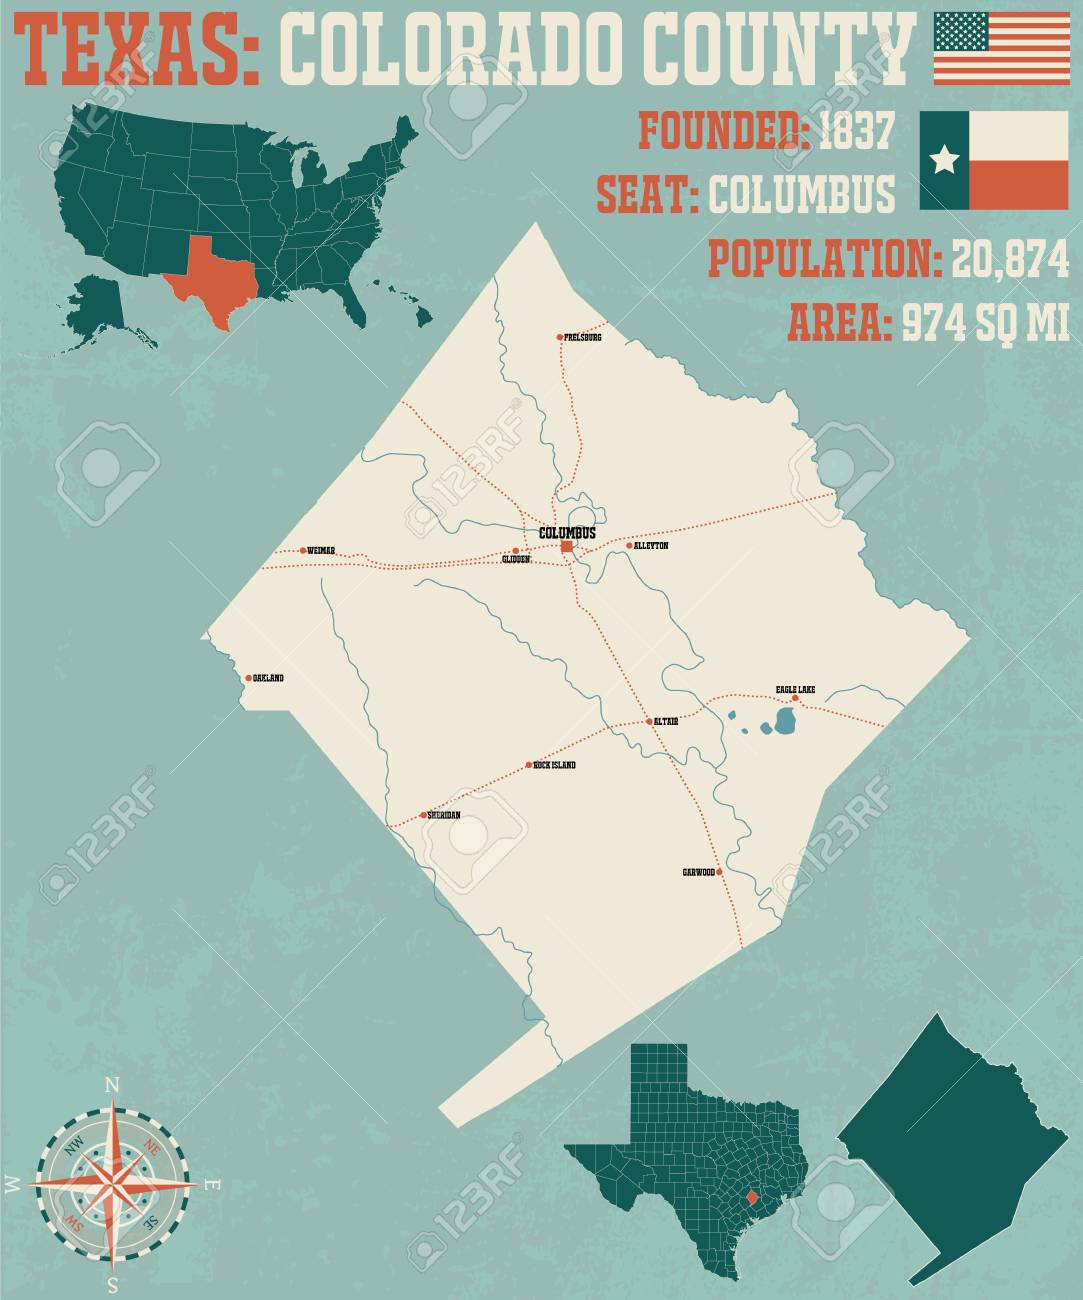 Detailed map of Colorado County in Texas, USA on